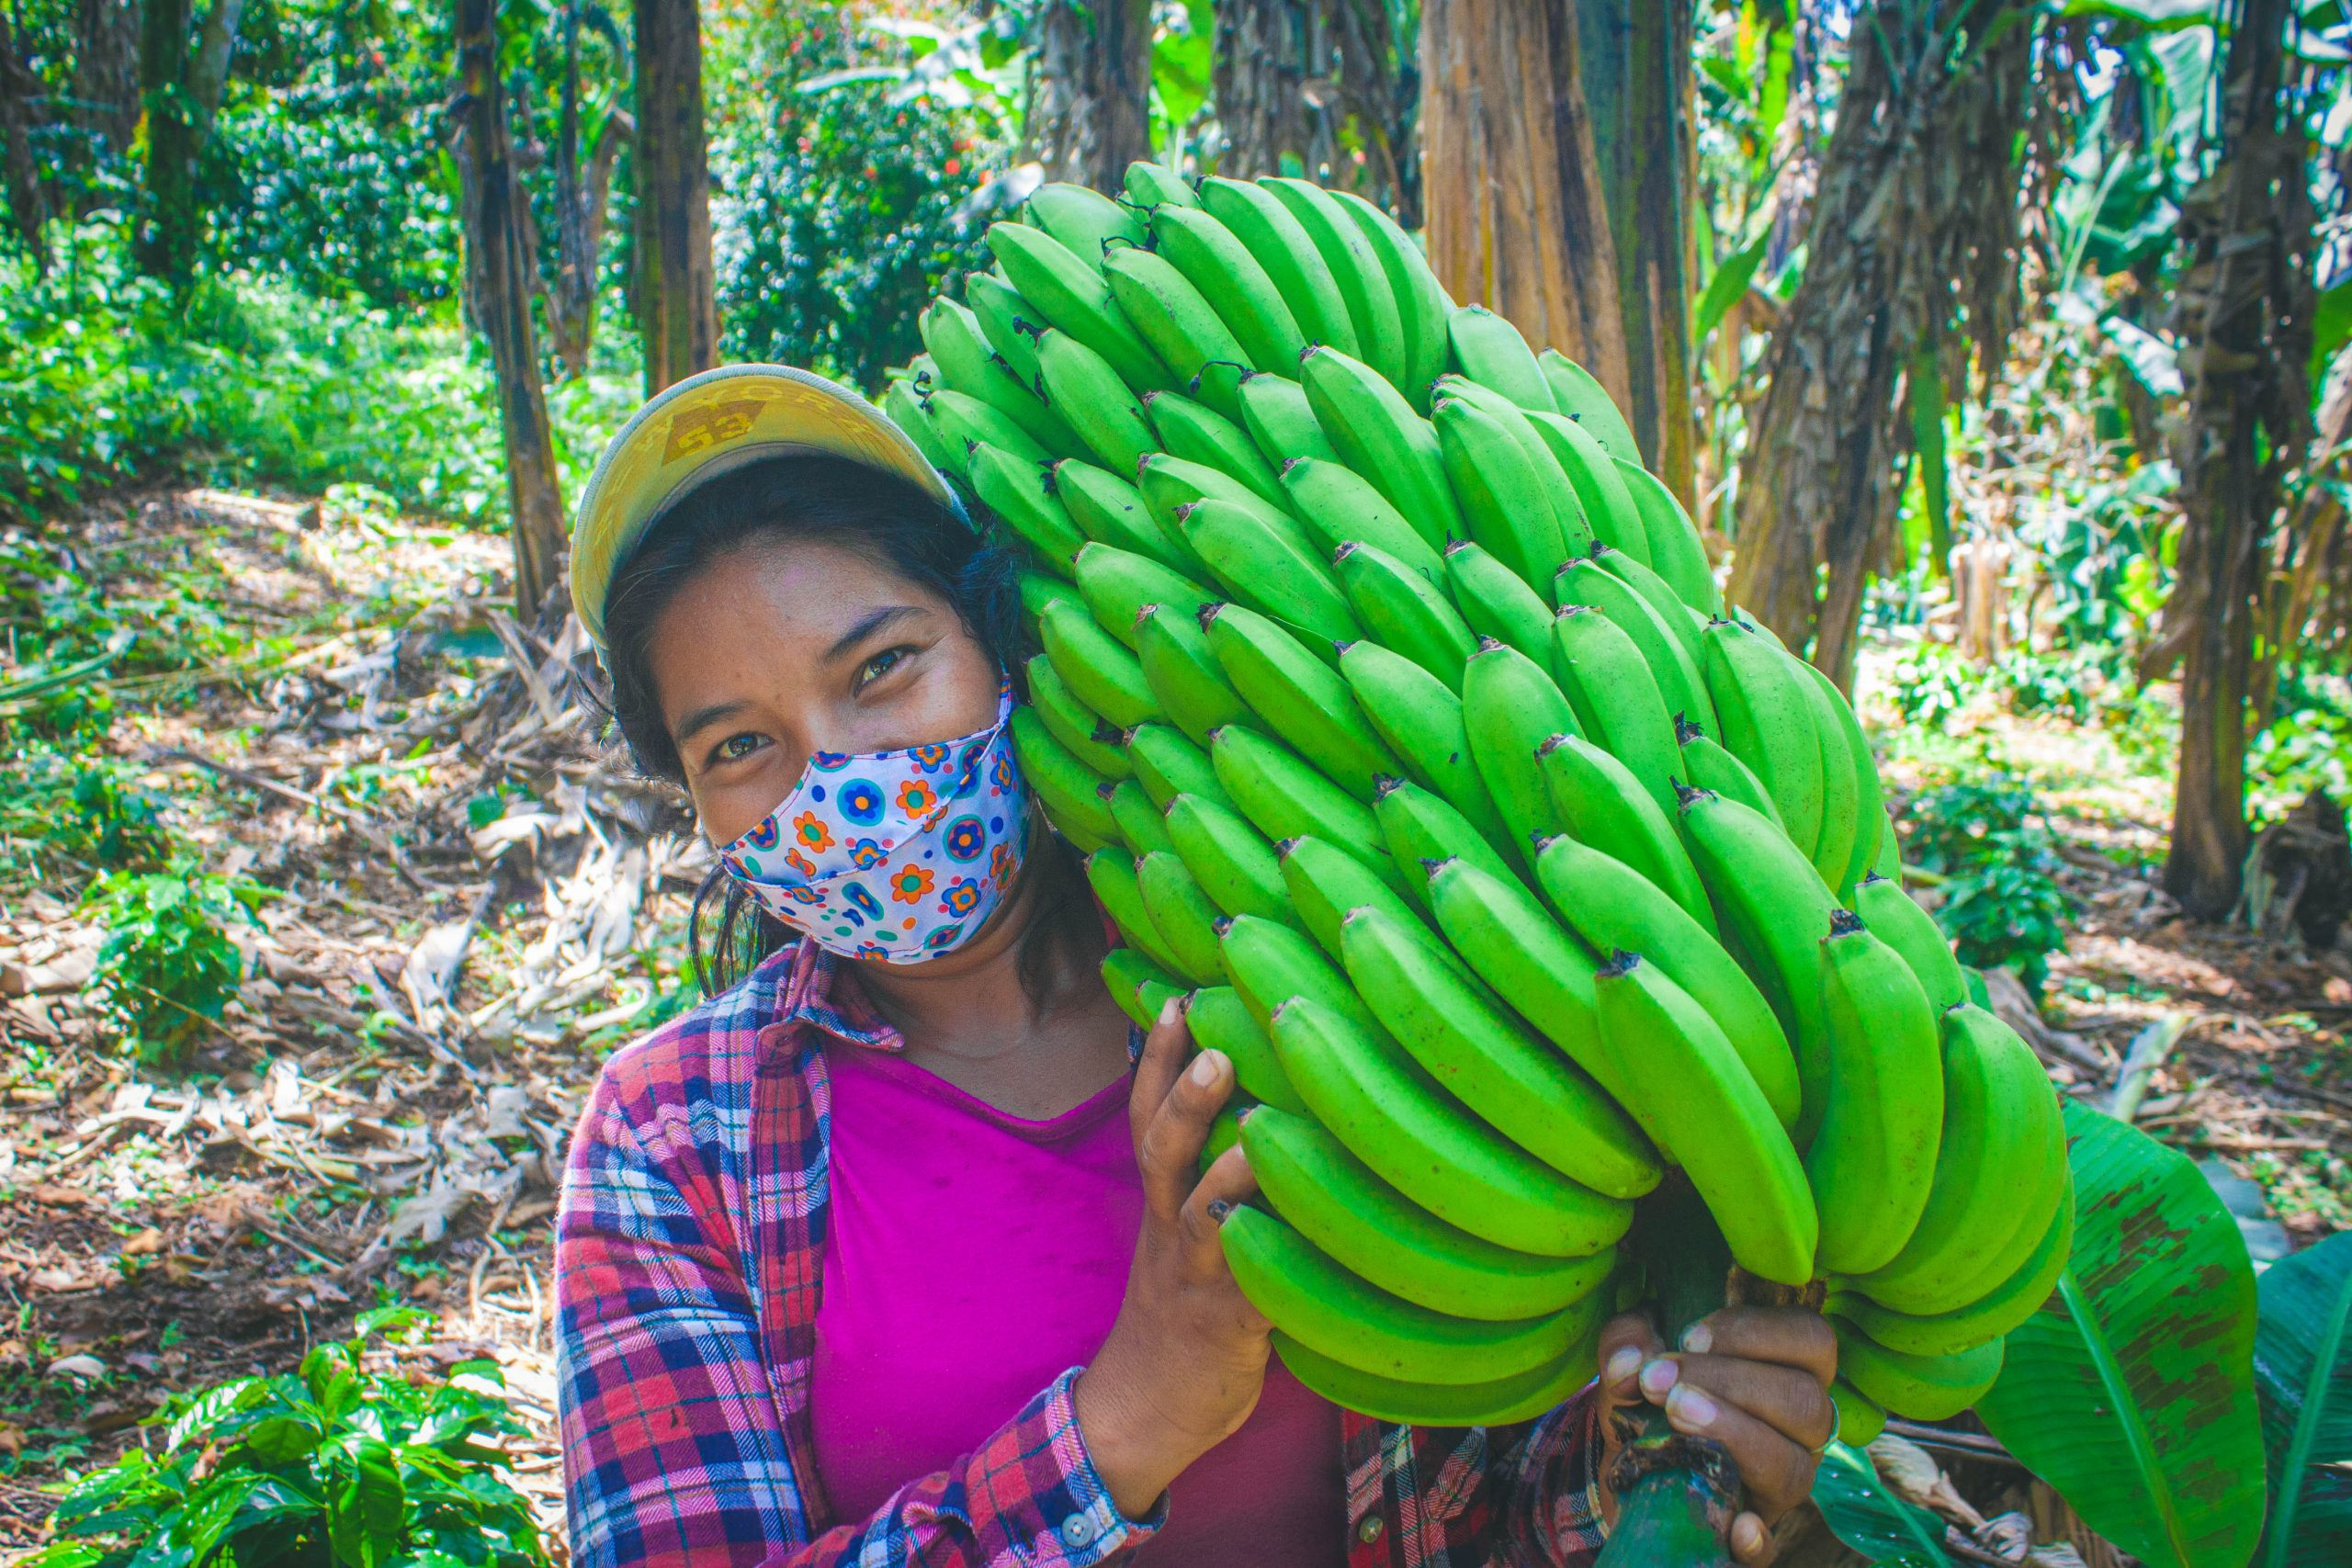 A woman leader in her community, single parent, and the head of her household, Rosa Gonzales carries a bunch of bananas in Matapalo, Nicaragua